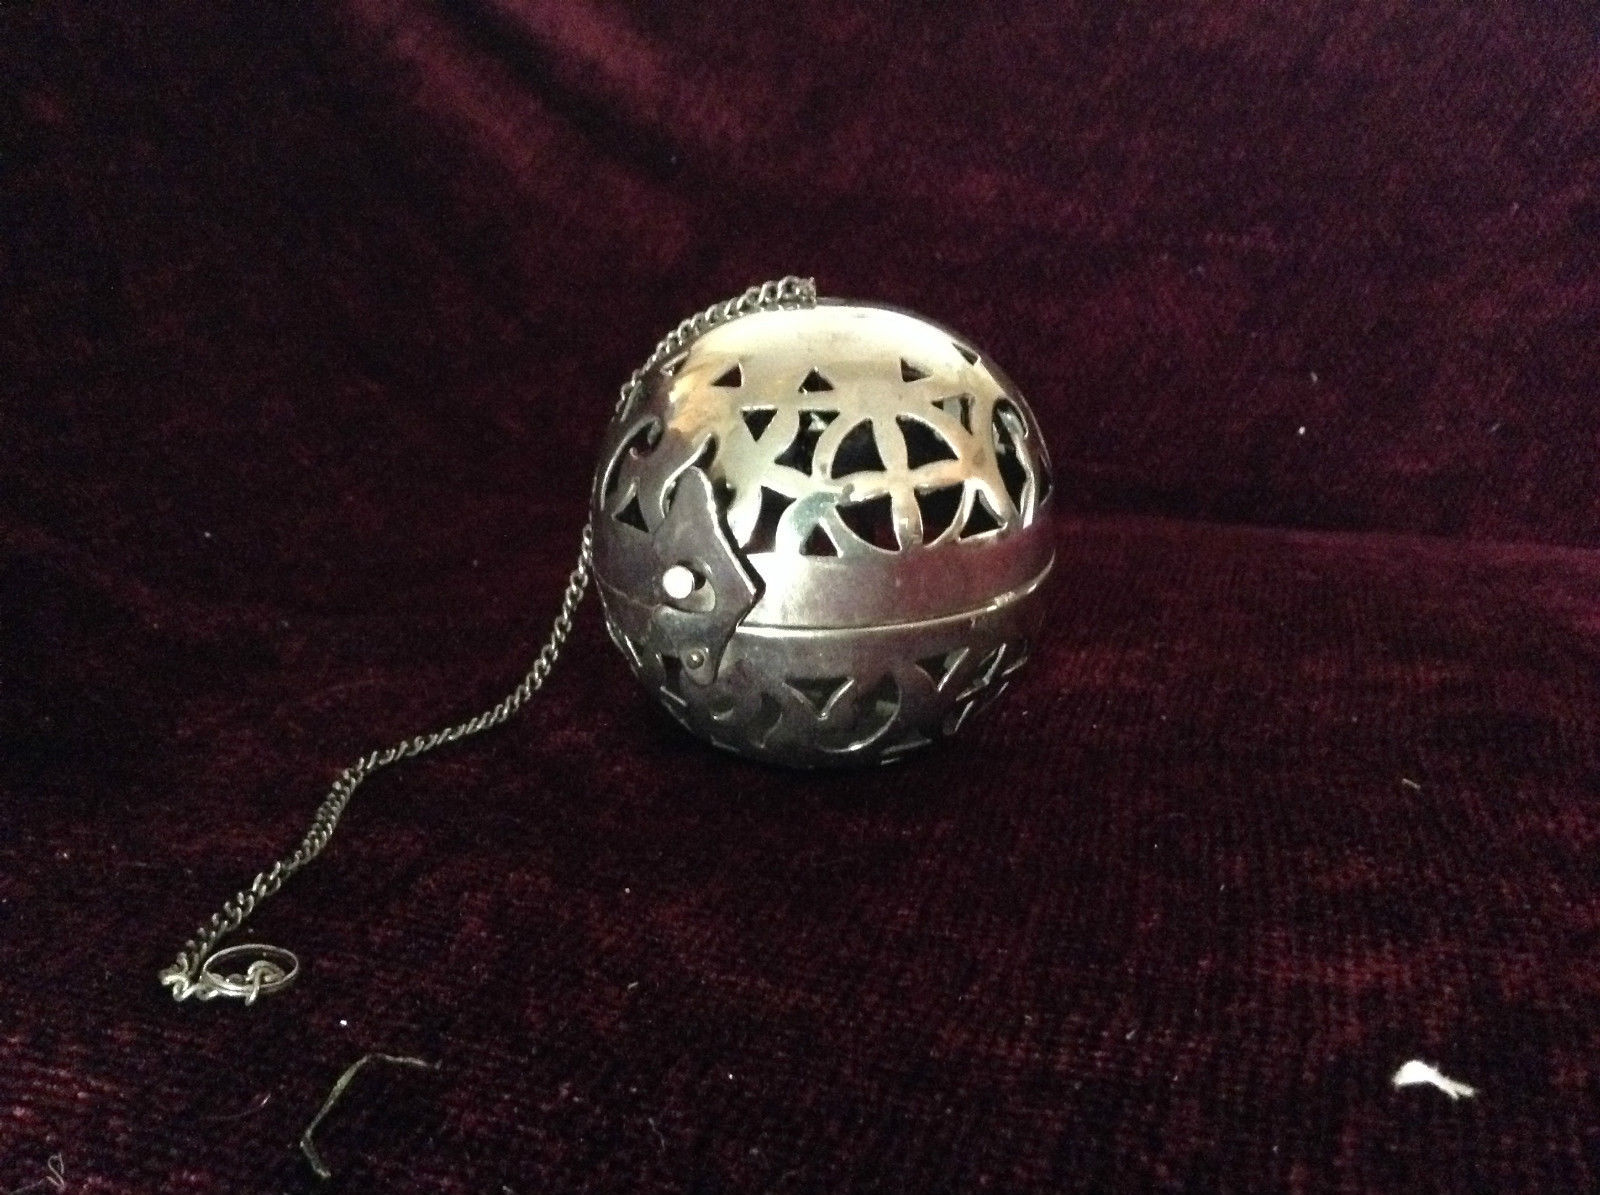 Silver Tone Hanging Ball and Chain Latch Opens Ball